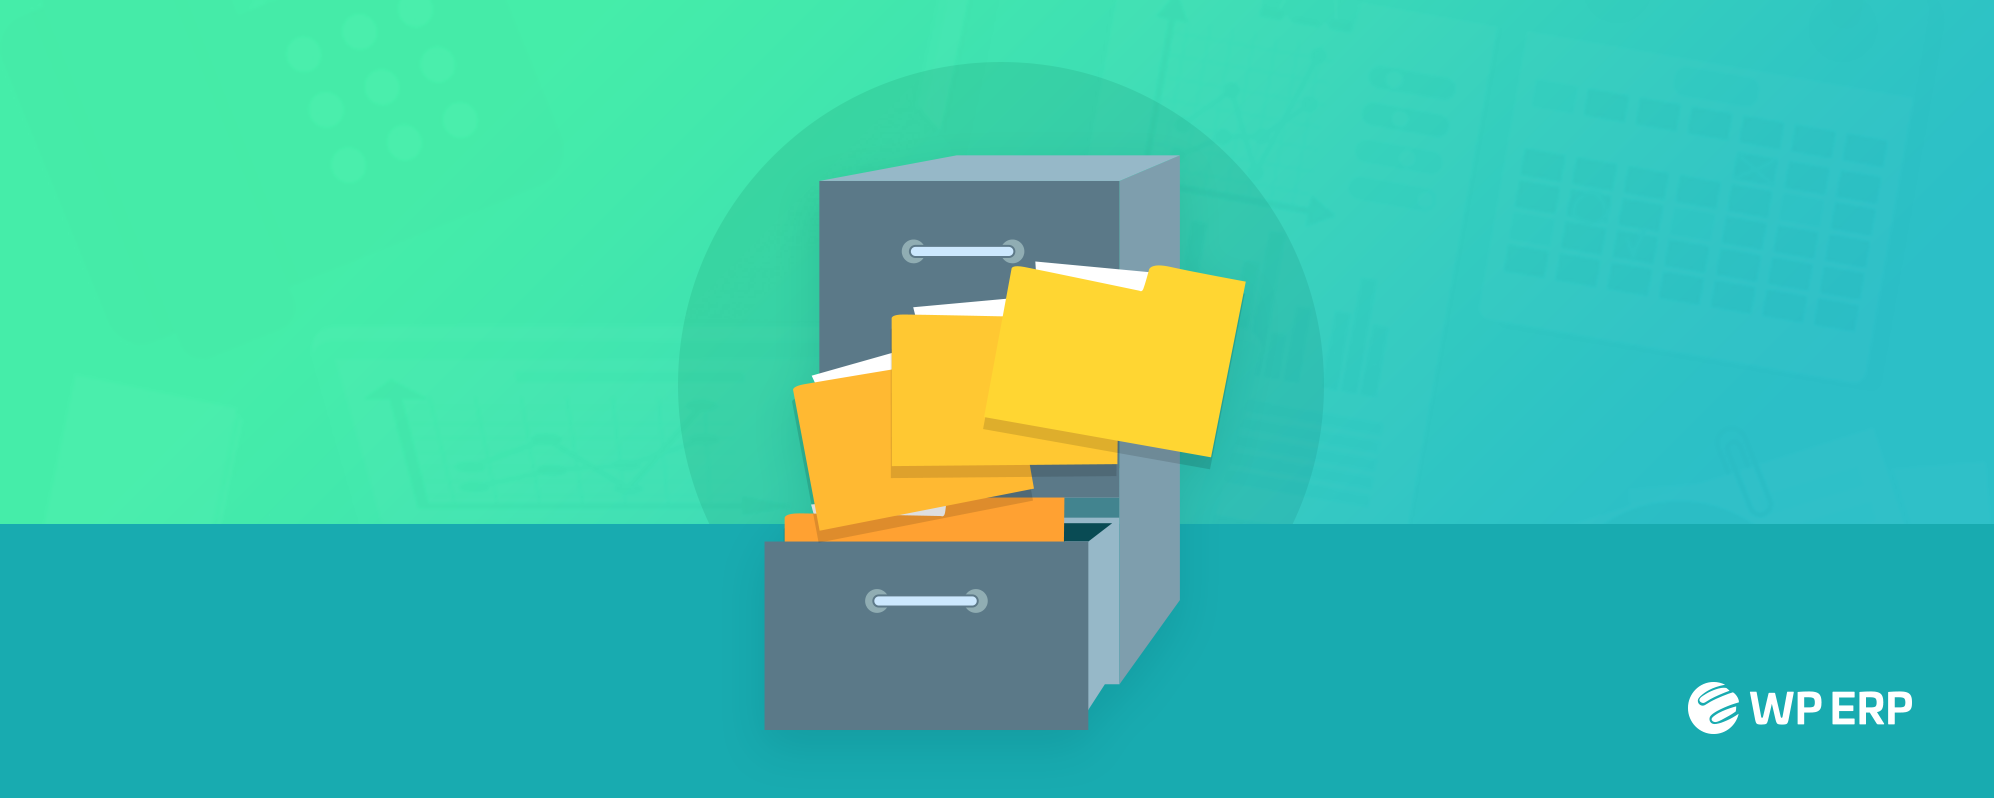 how to organize paper files at work